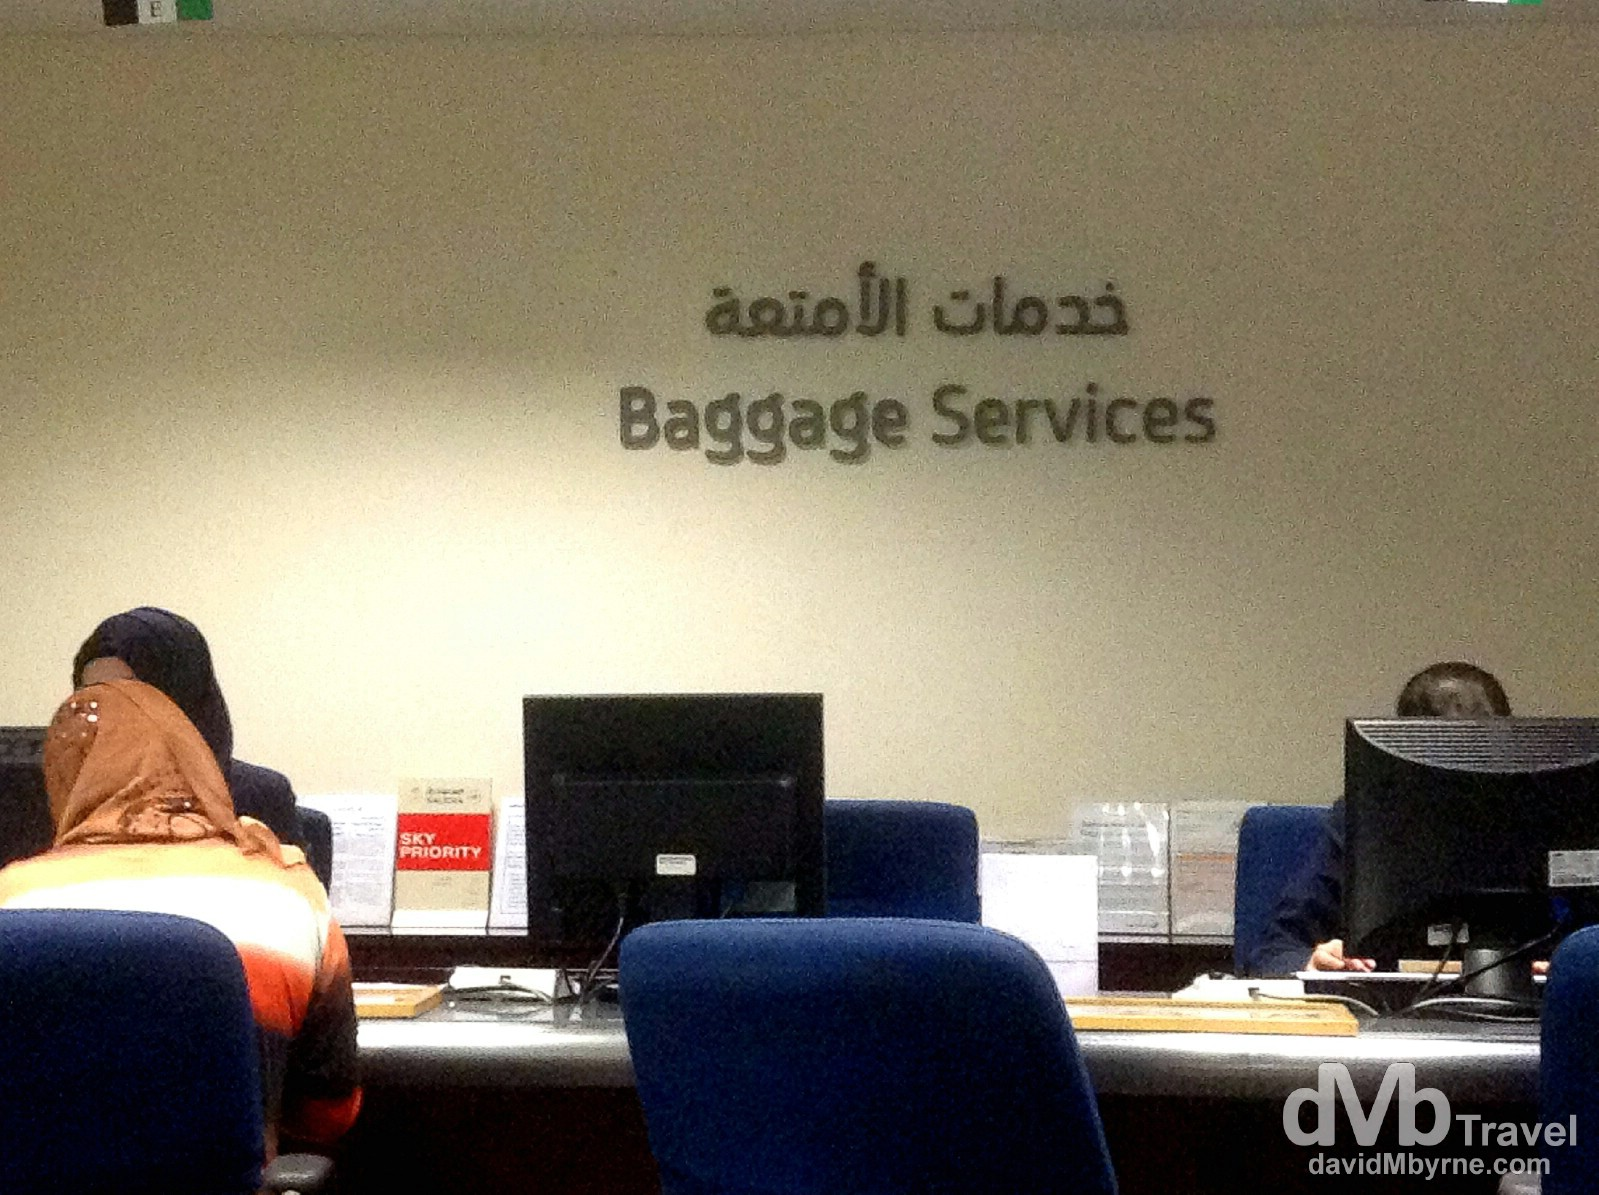 Baggage Services, Dubai International Airport, UAE. April 11th, 2014.